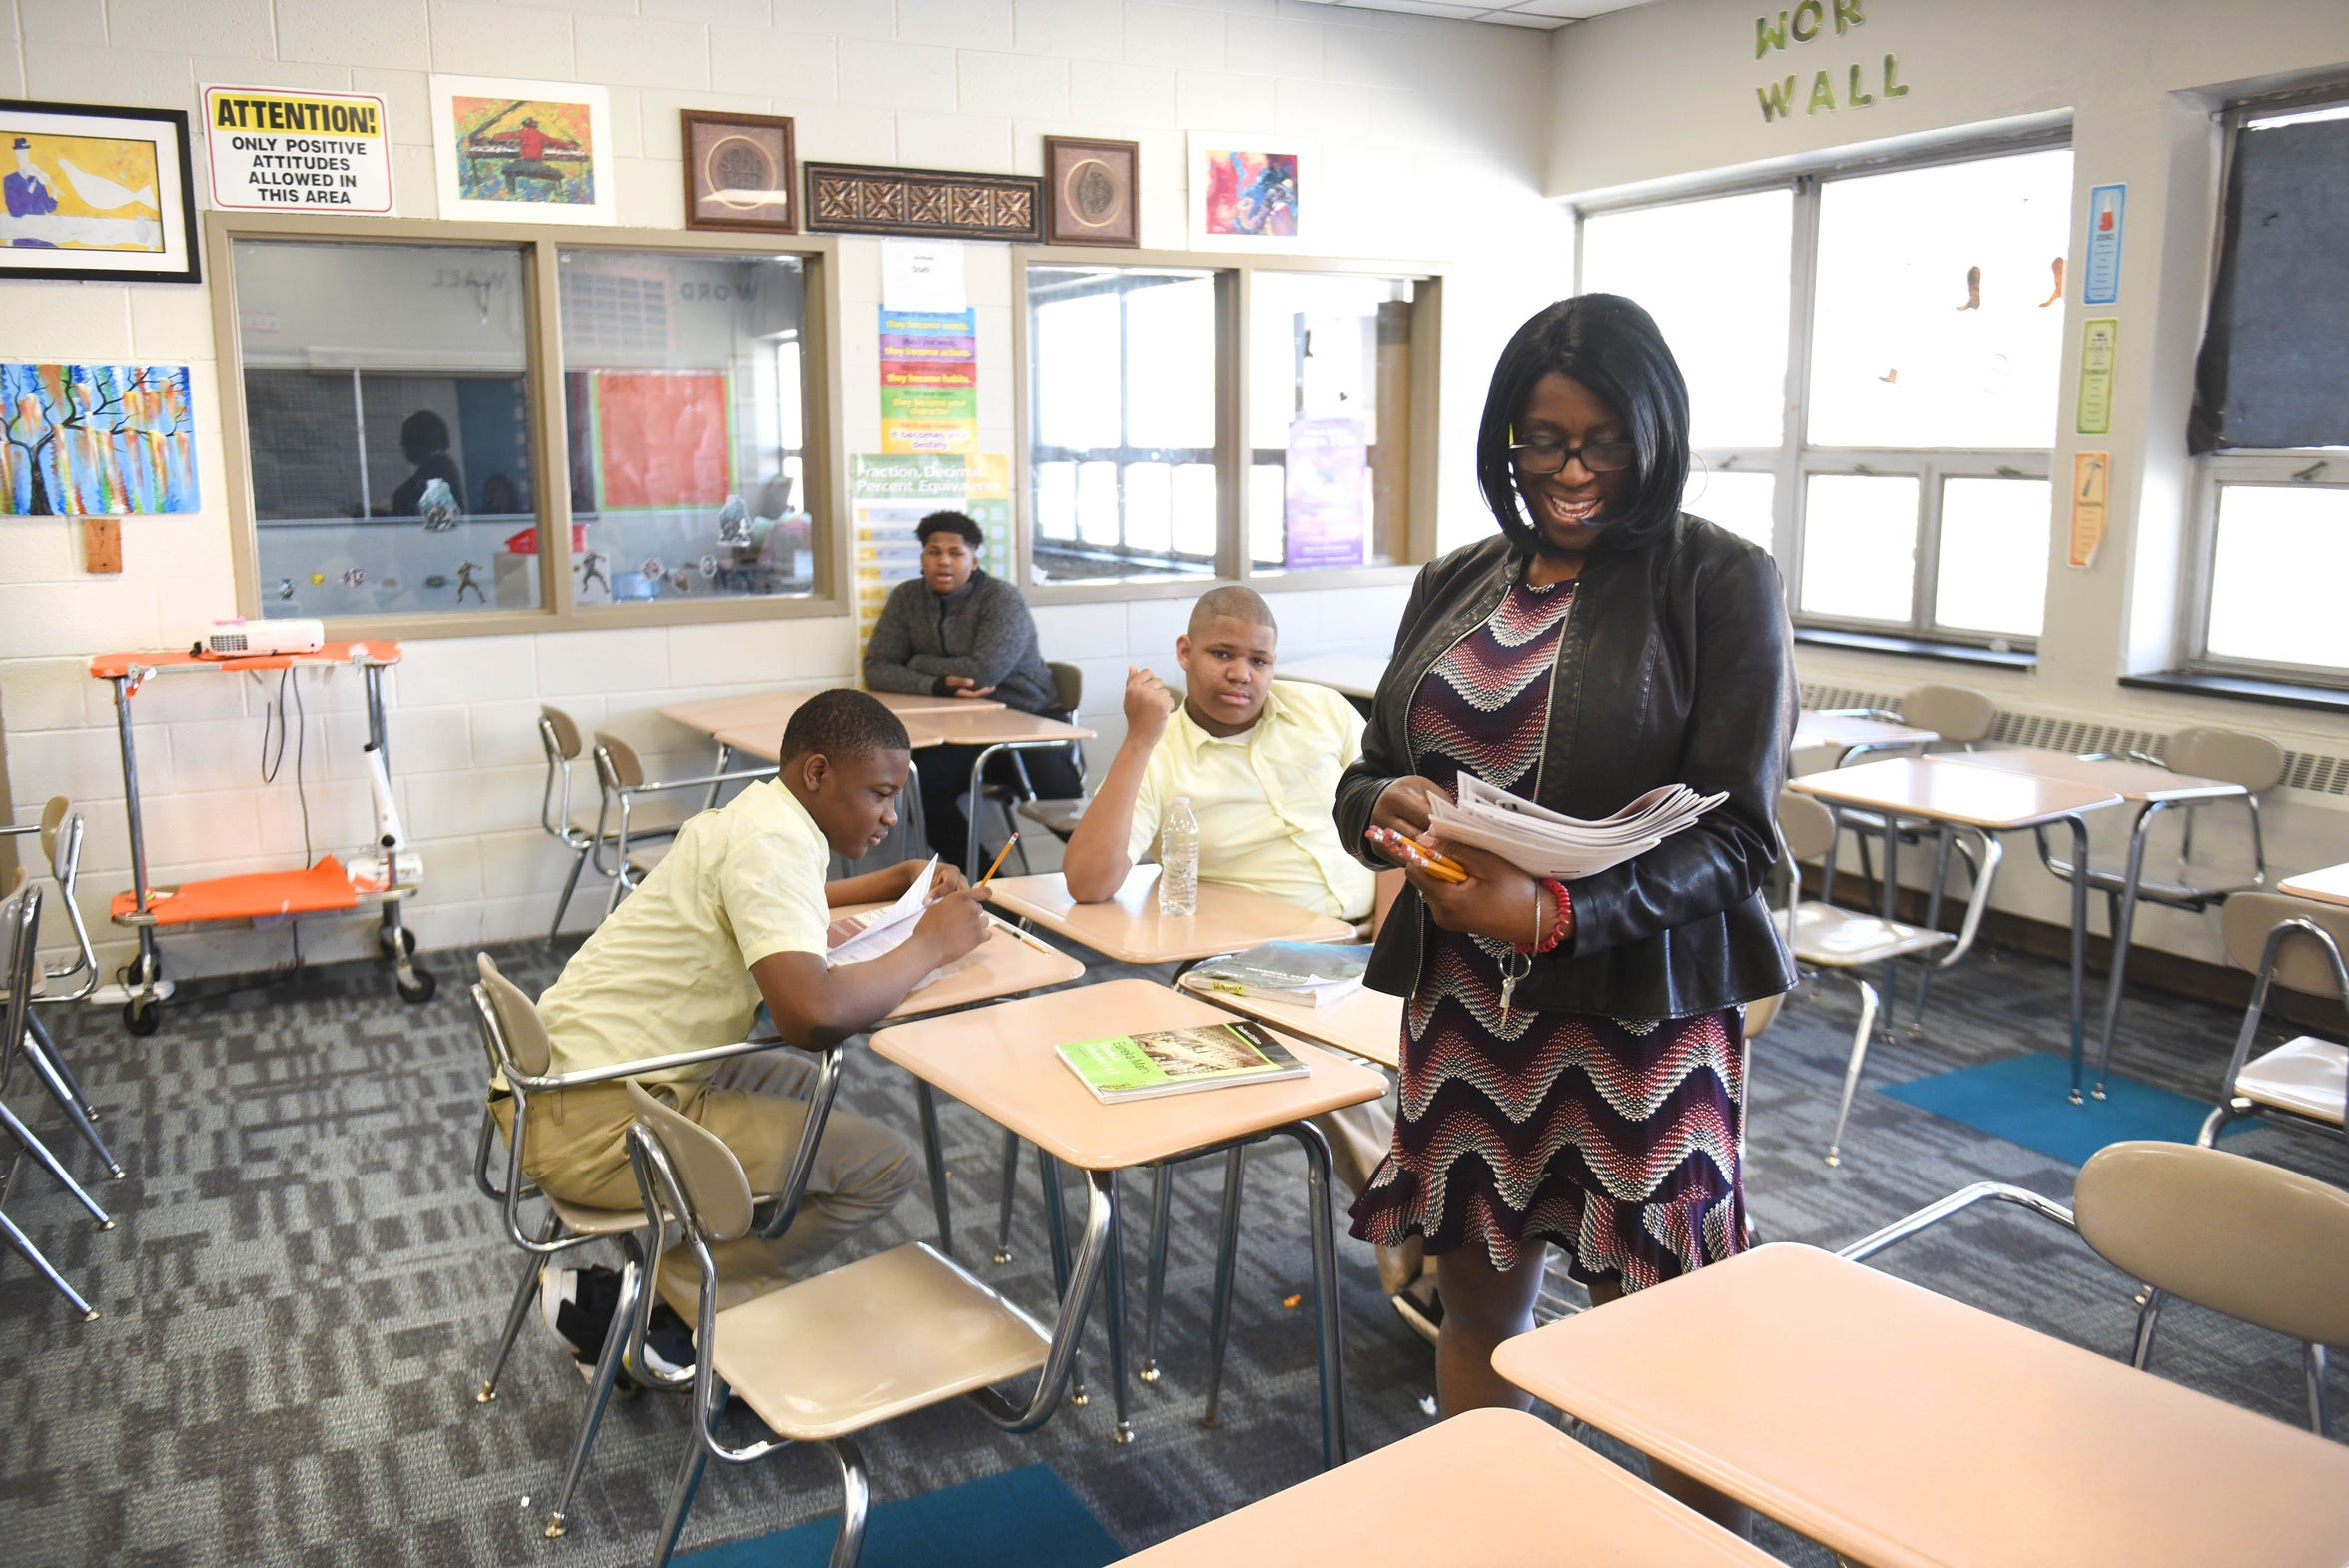 Palmer Park Preparatory Academy teacher Dorothy Crane works with students in one of the many refurbished classrooms at the school.  But according to a 2018 assessment, the building needs $25.87 million in facilities repairs.